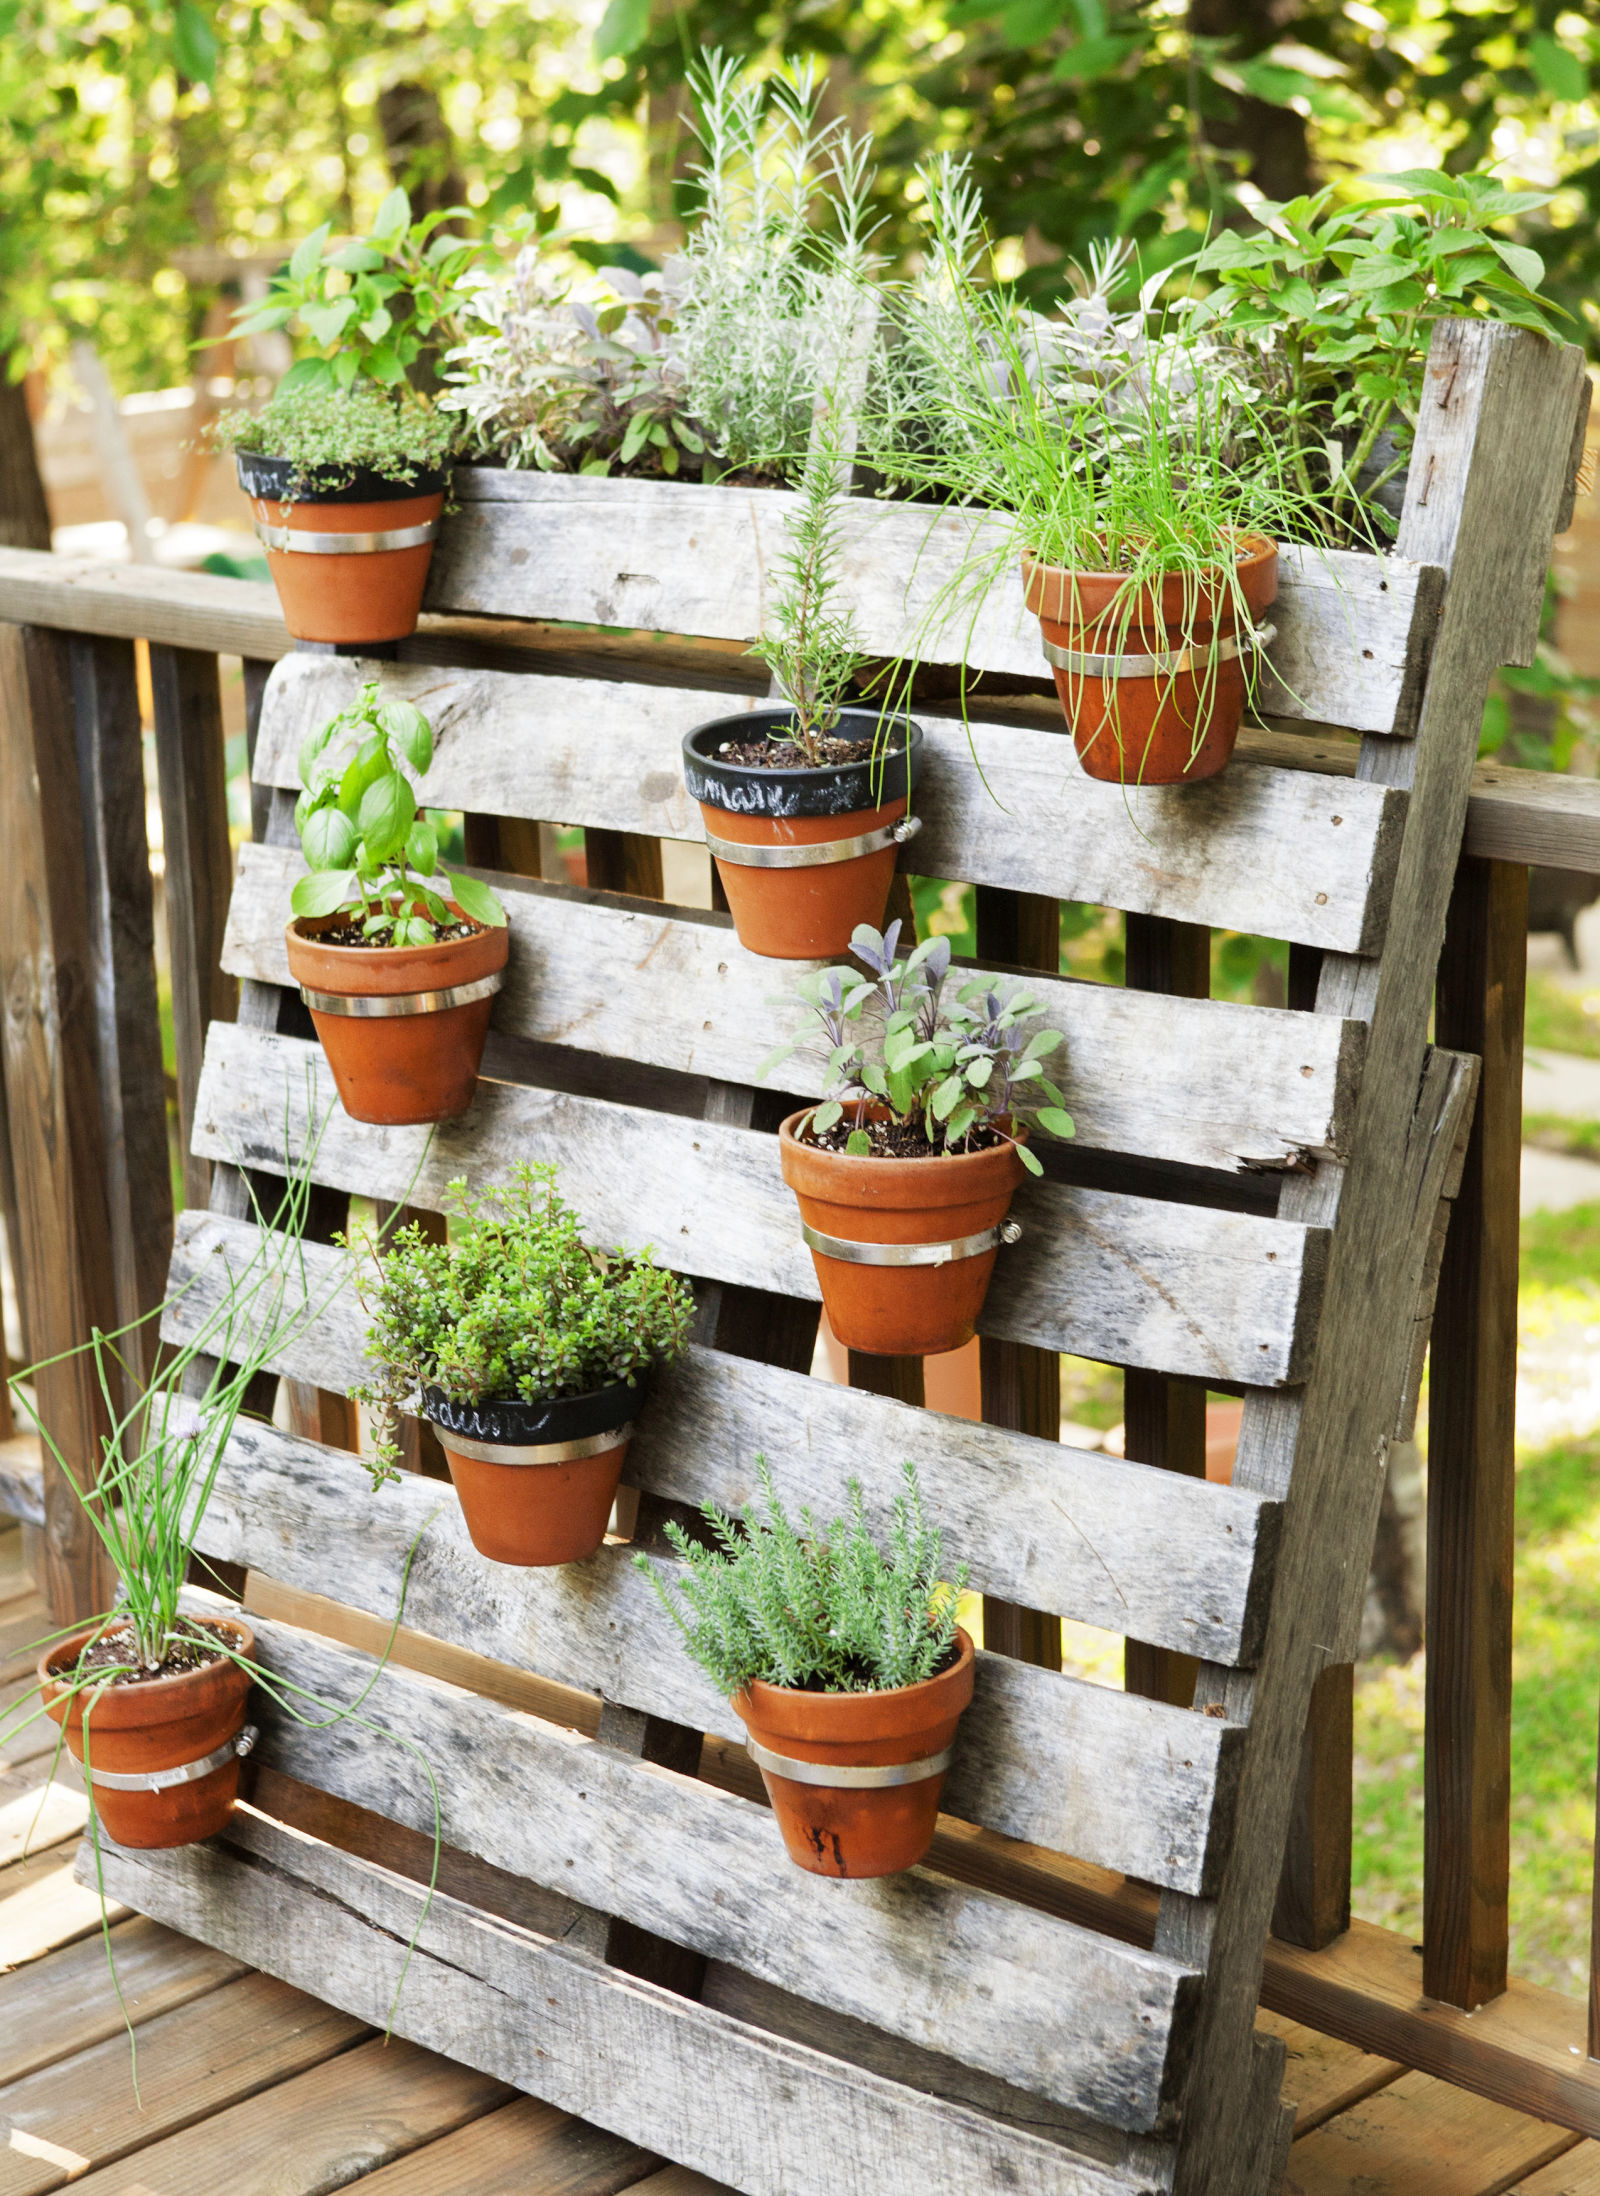 13 container gardening ideas potted plant ideas we love - Garden Ideas Using Pallets